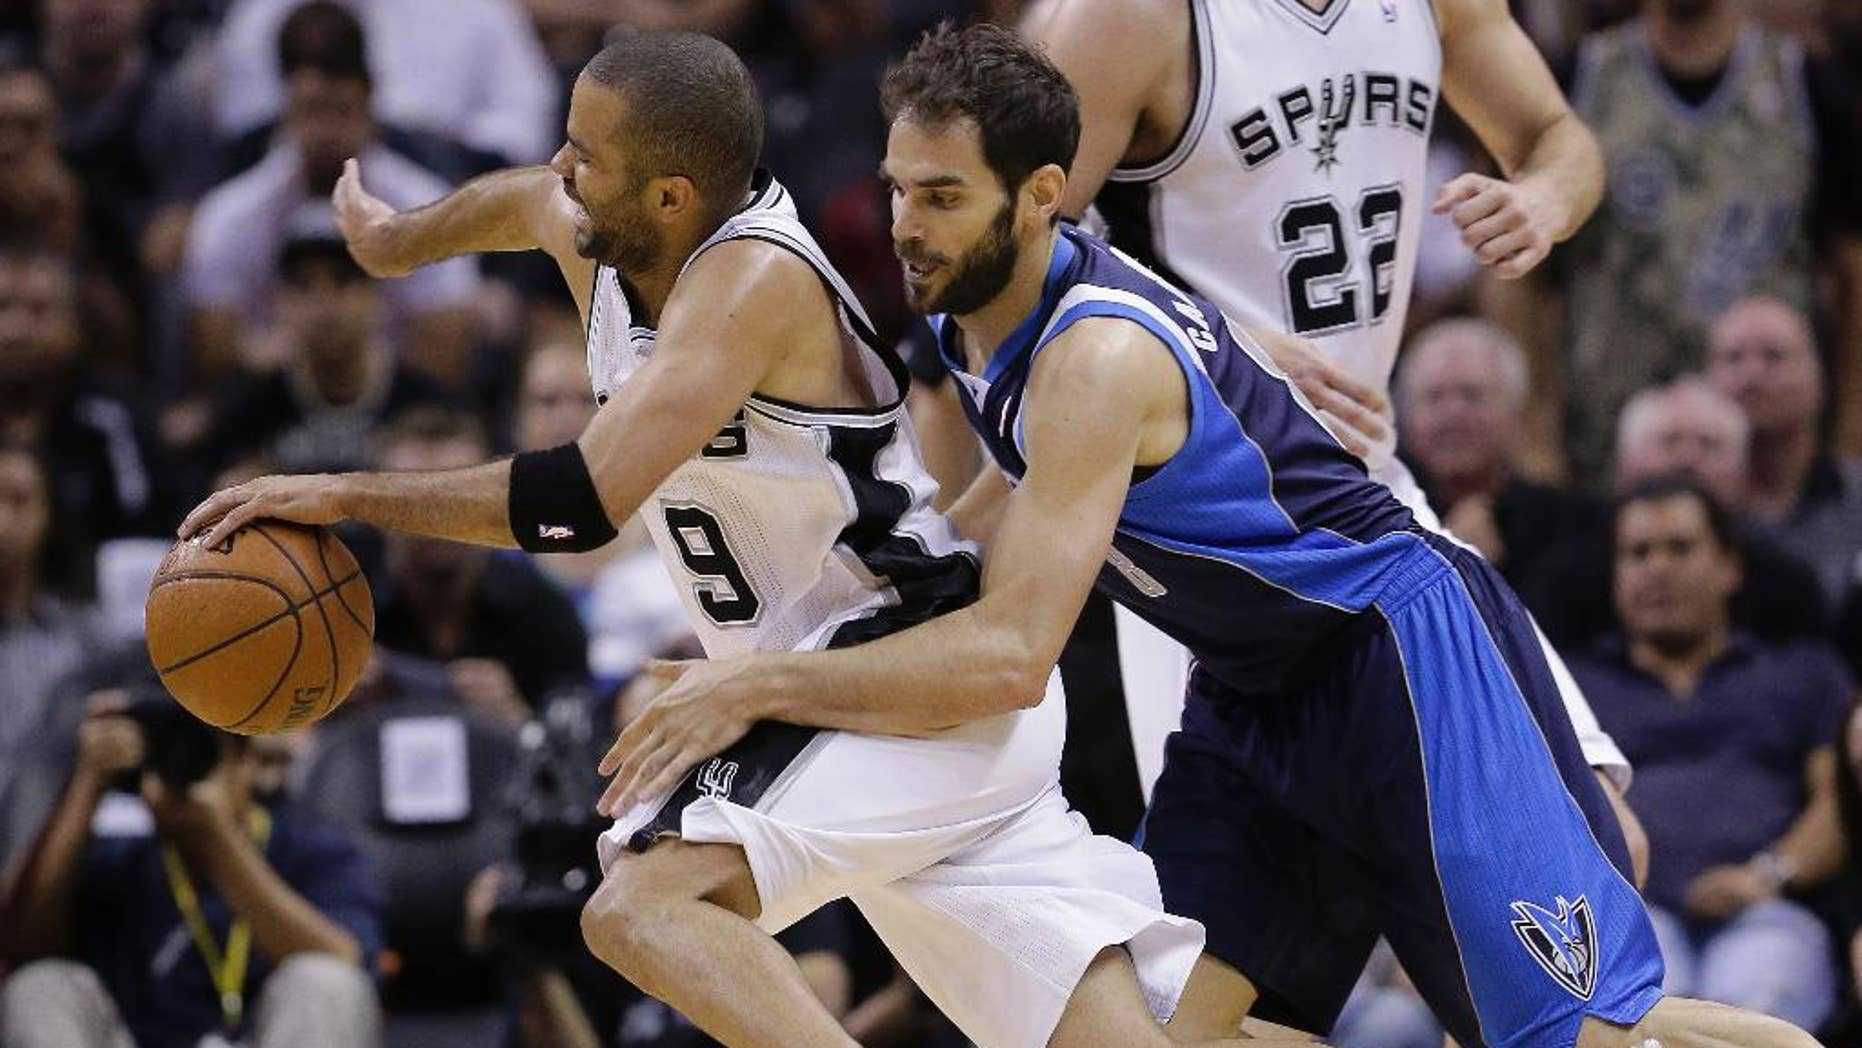 San Antonio Spurs' Tony Parker (9), of France, is fouled by Dallas Mavericks' Jose Calderon (8), of Spain, during the second half of Game 5 of the opening-round NBA basketball playoff series on Wednesday, April 30, 2014, in San Antonio. San Antonio won 109-103. (AP Photo/Eric Gay)